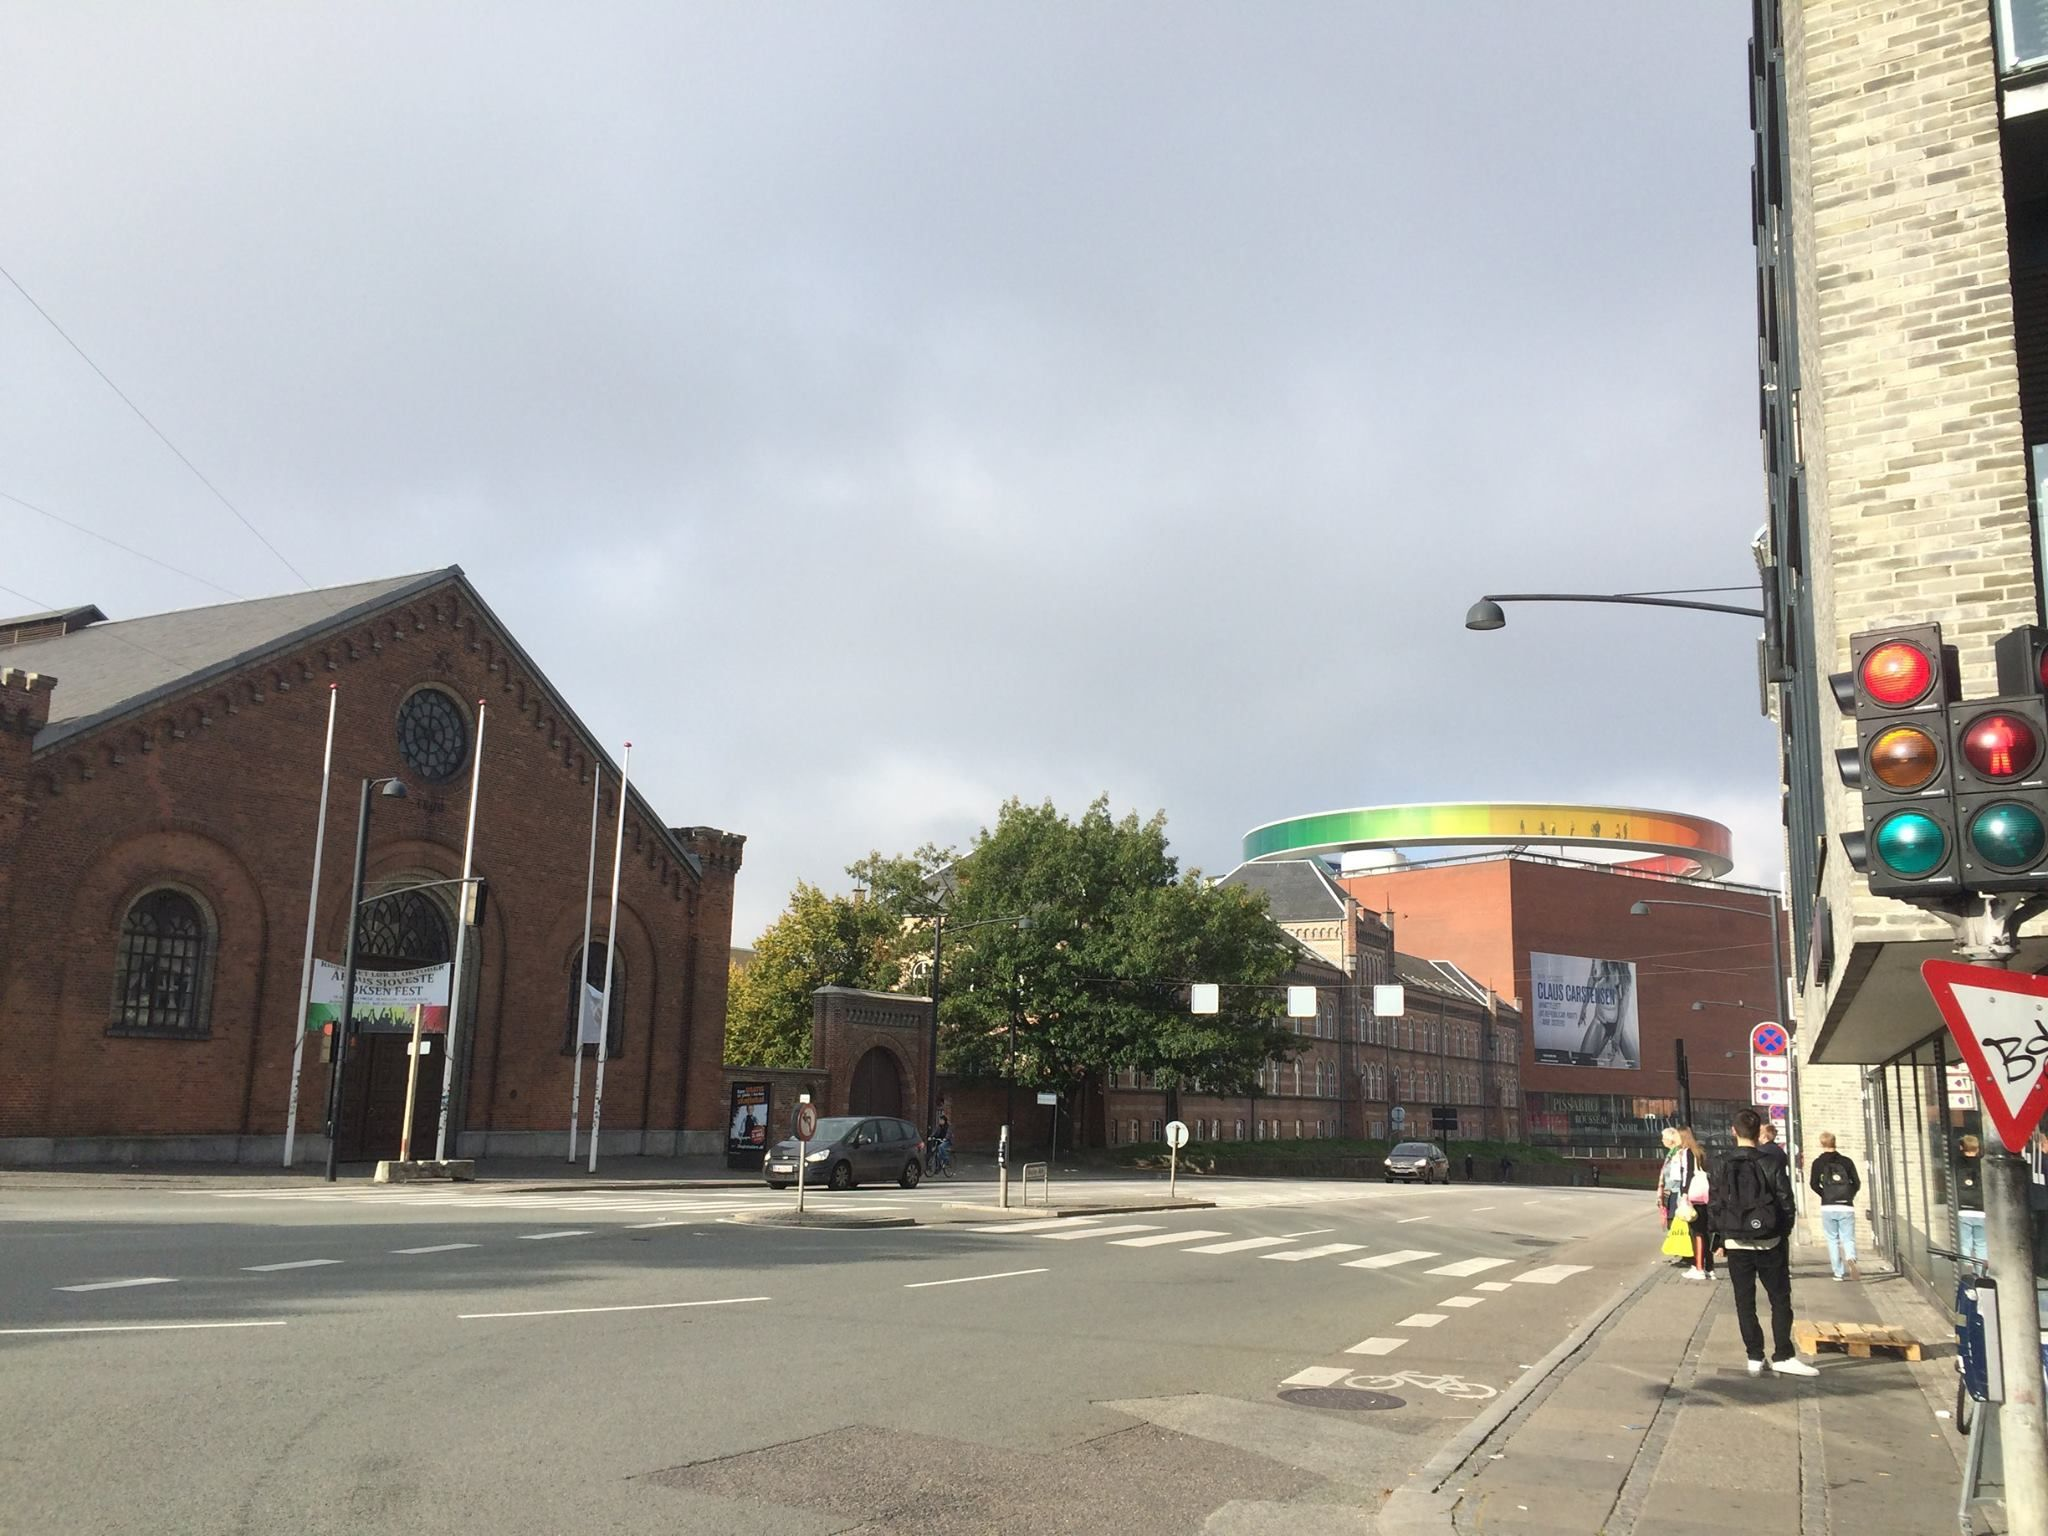 In view the rainbow panorama mounted above the ARoS Aarhus Art Museum building.